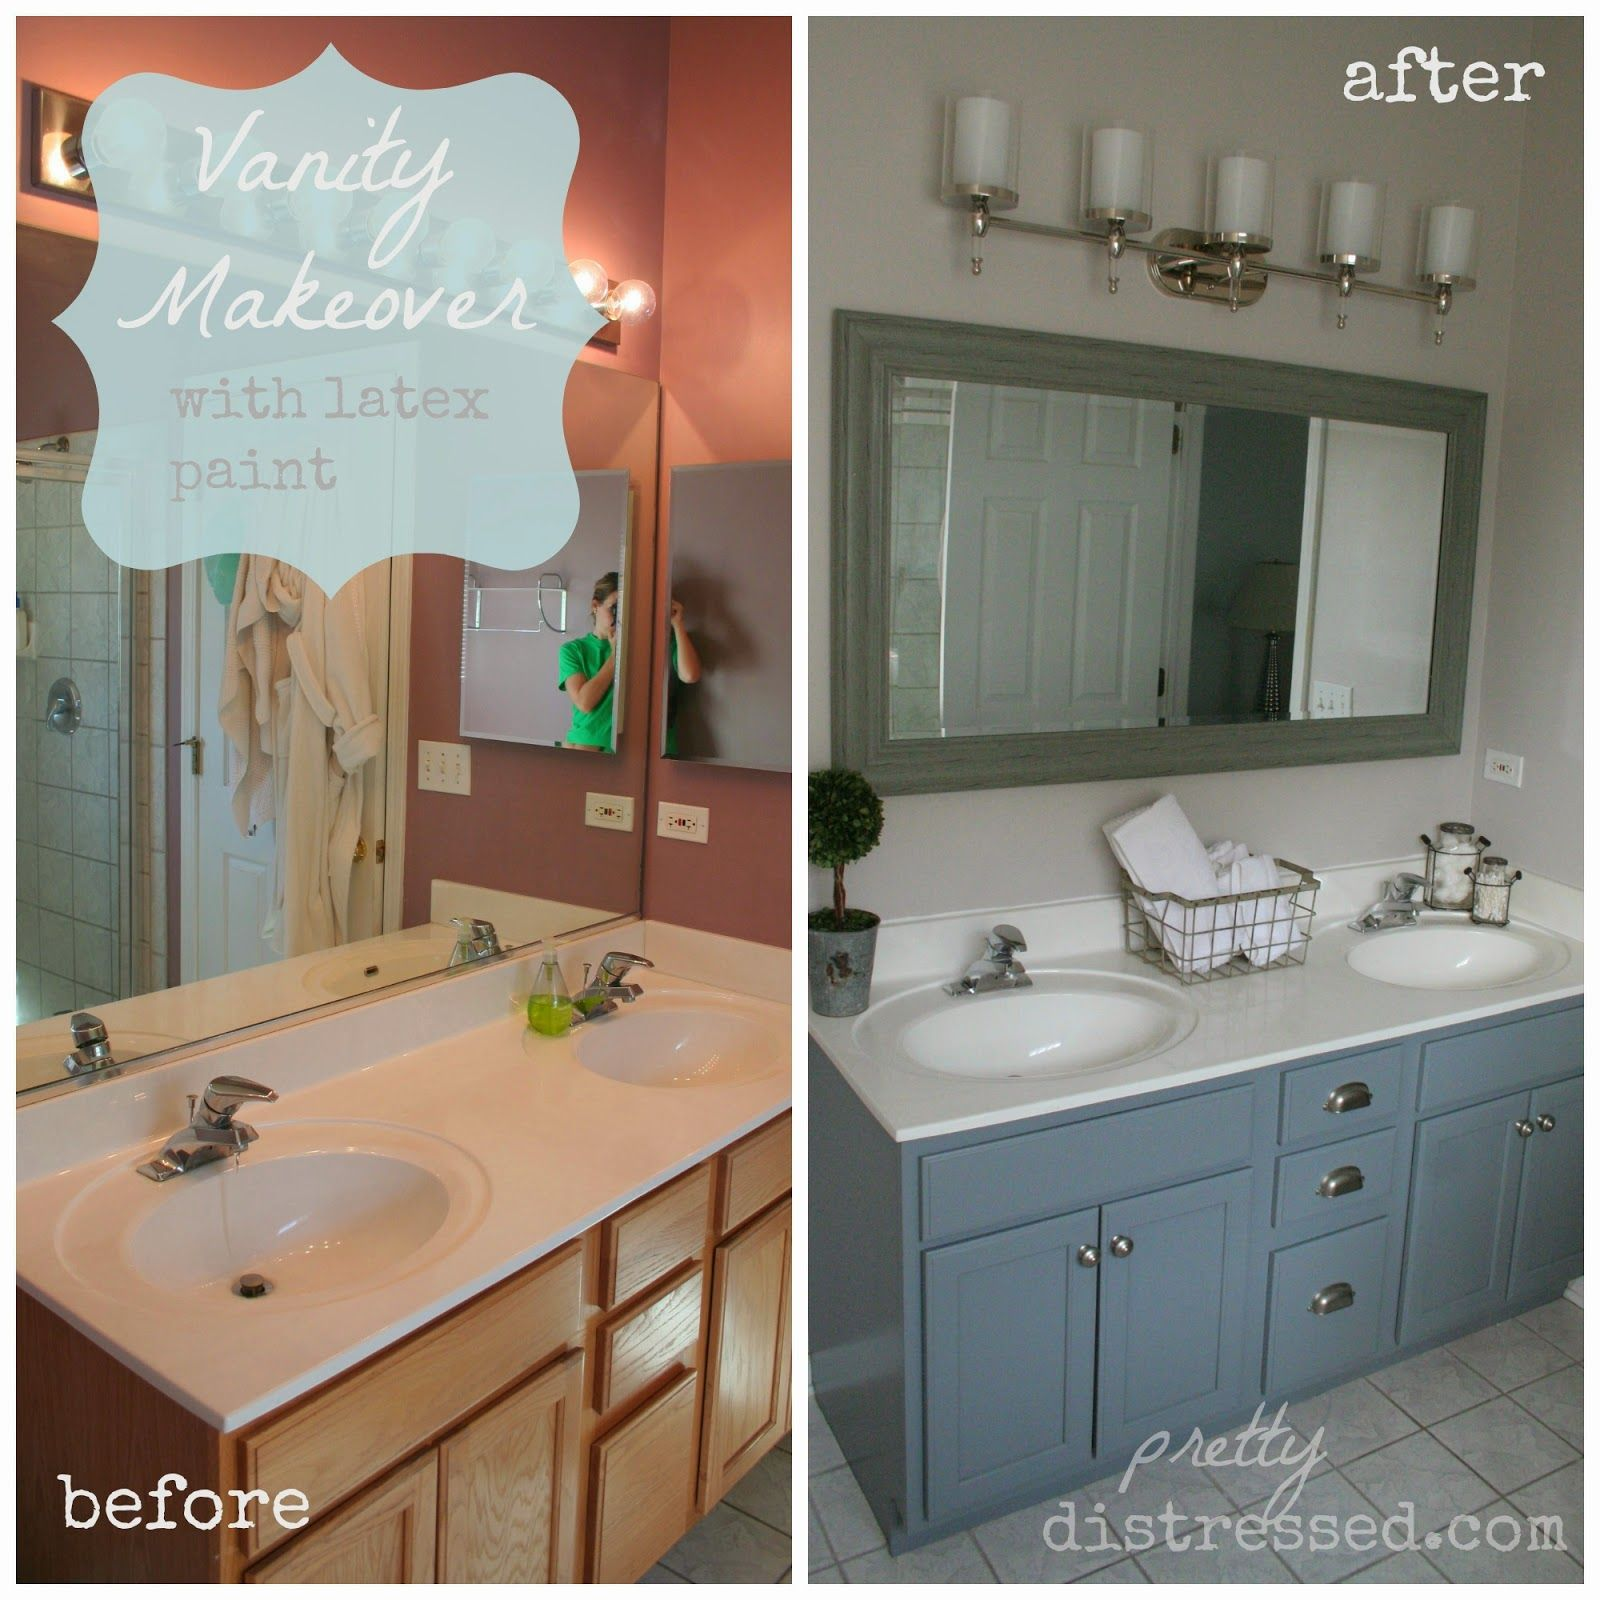 How to paint bathroom cabinets - Bathroom Oak Vanity Makeover With Latex Paint Bathroom Ideas Painted Furniture